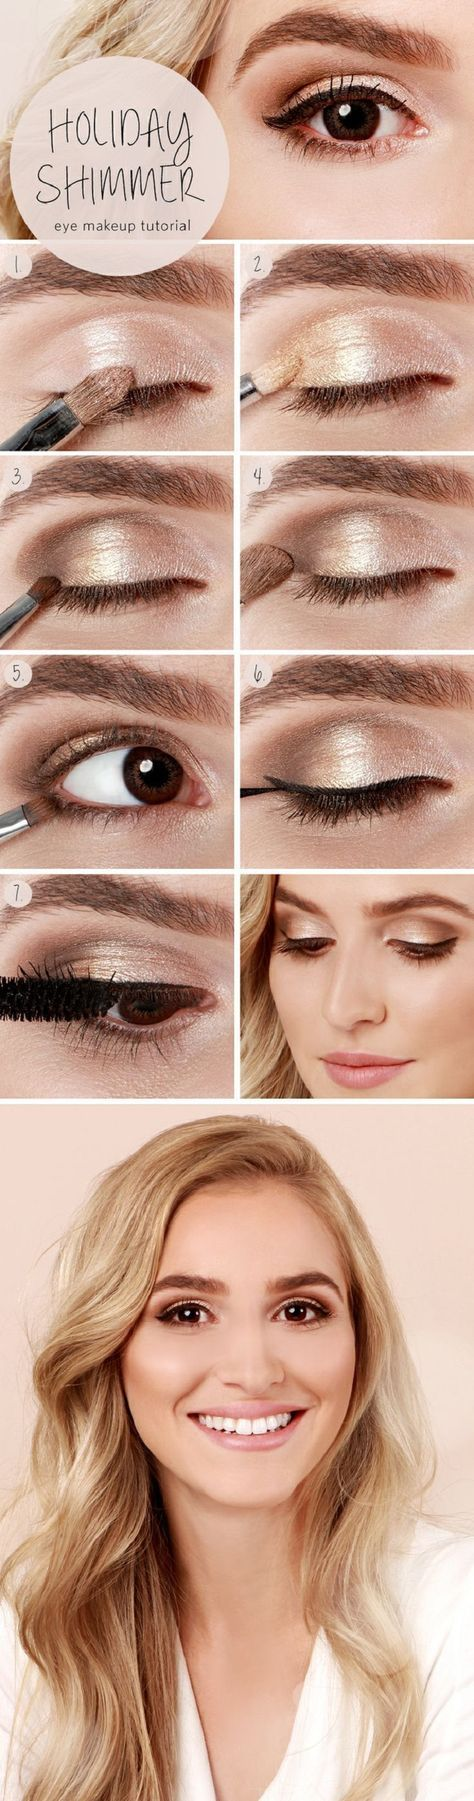 11 Holiday Beauty Tutorials to Pin Now and Try Later